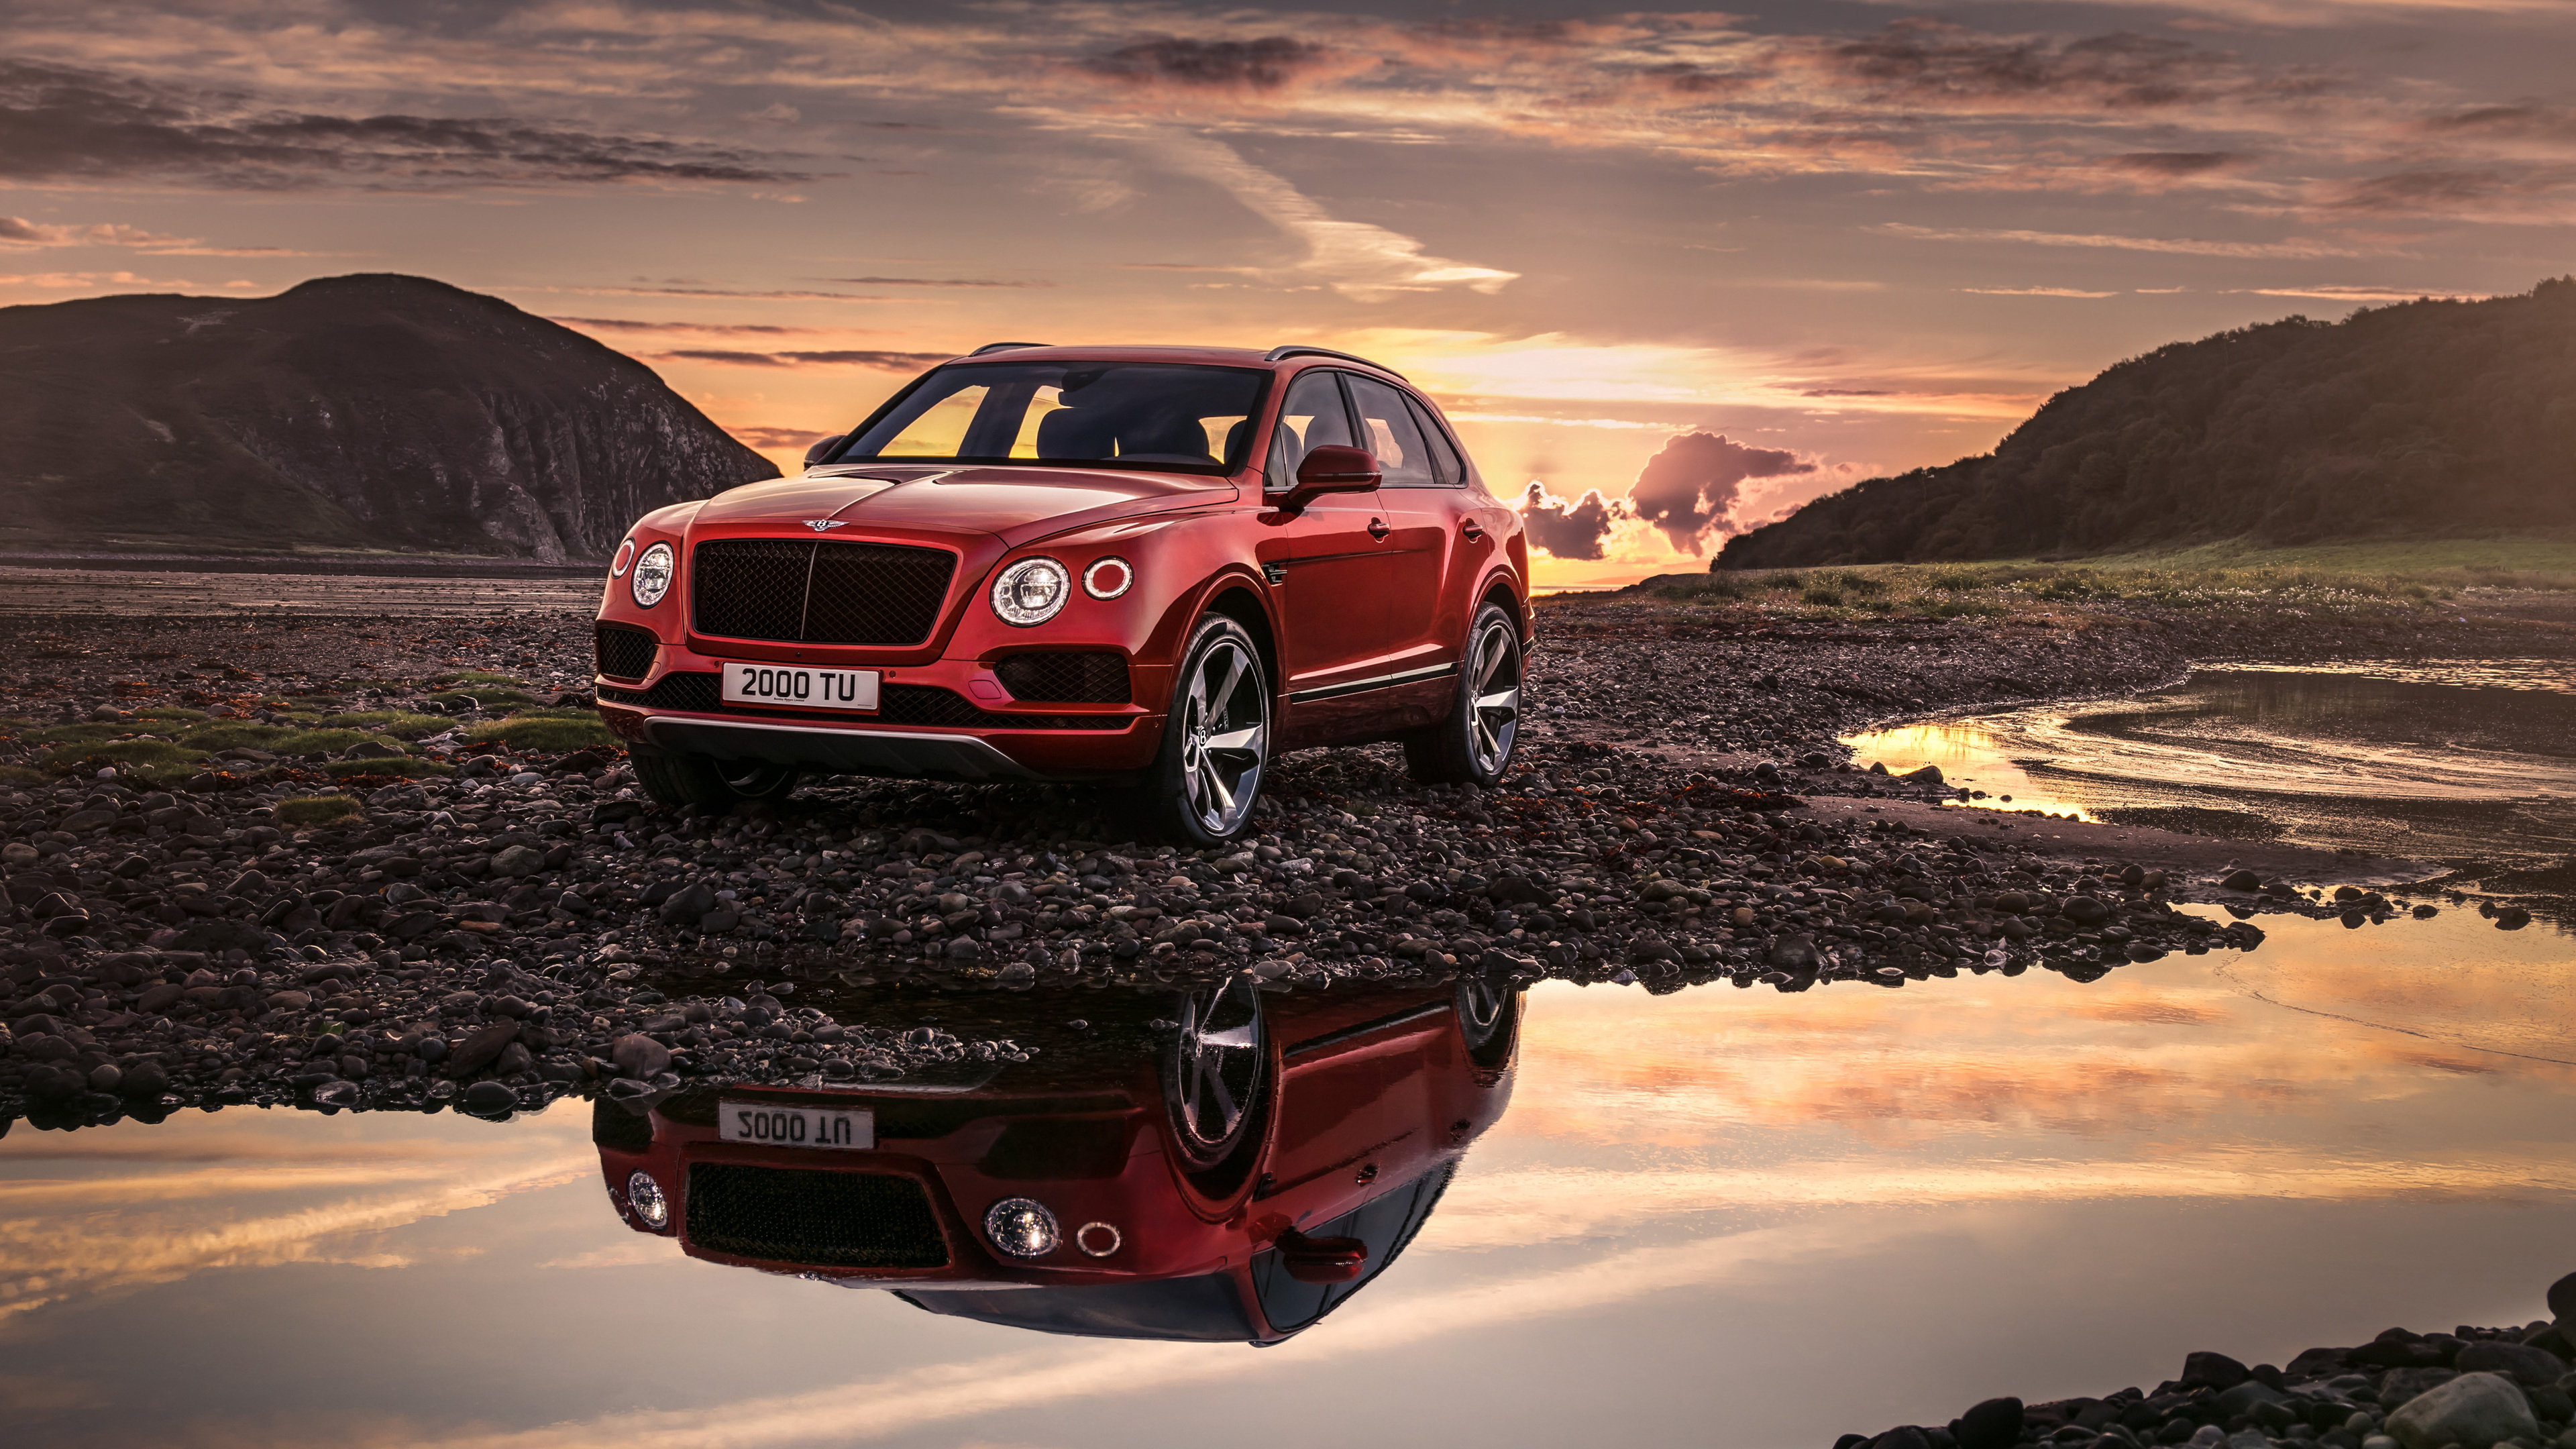 bentley bentayga v8 2018 1539109132 - Bentley Bentayga V8 2018 - hd-wallpapers, cars wallpapers, bentley wallpapers, bentley bentayga wallpapers, 4k-wallpapers, 2018 cars wallpapers